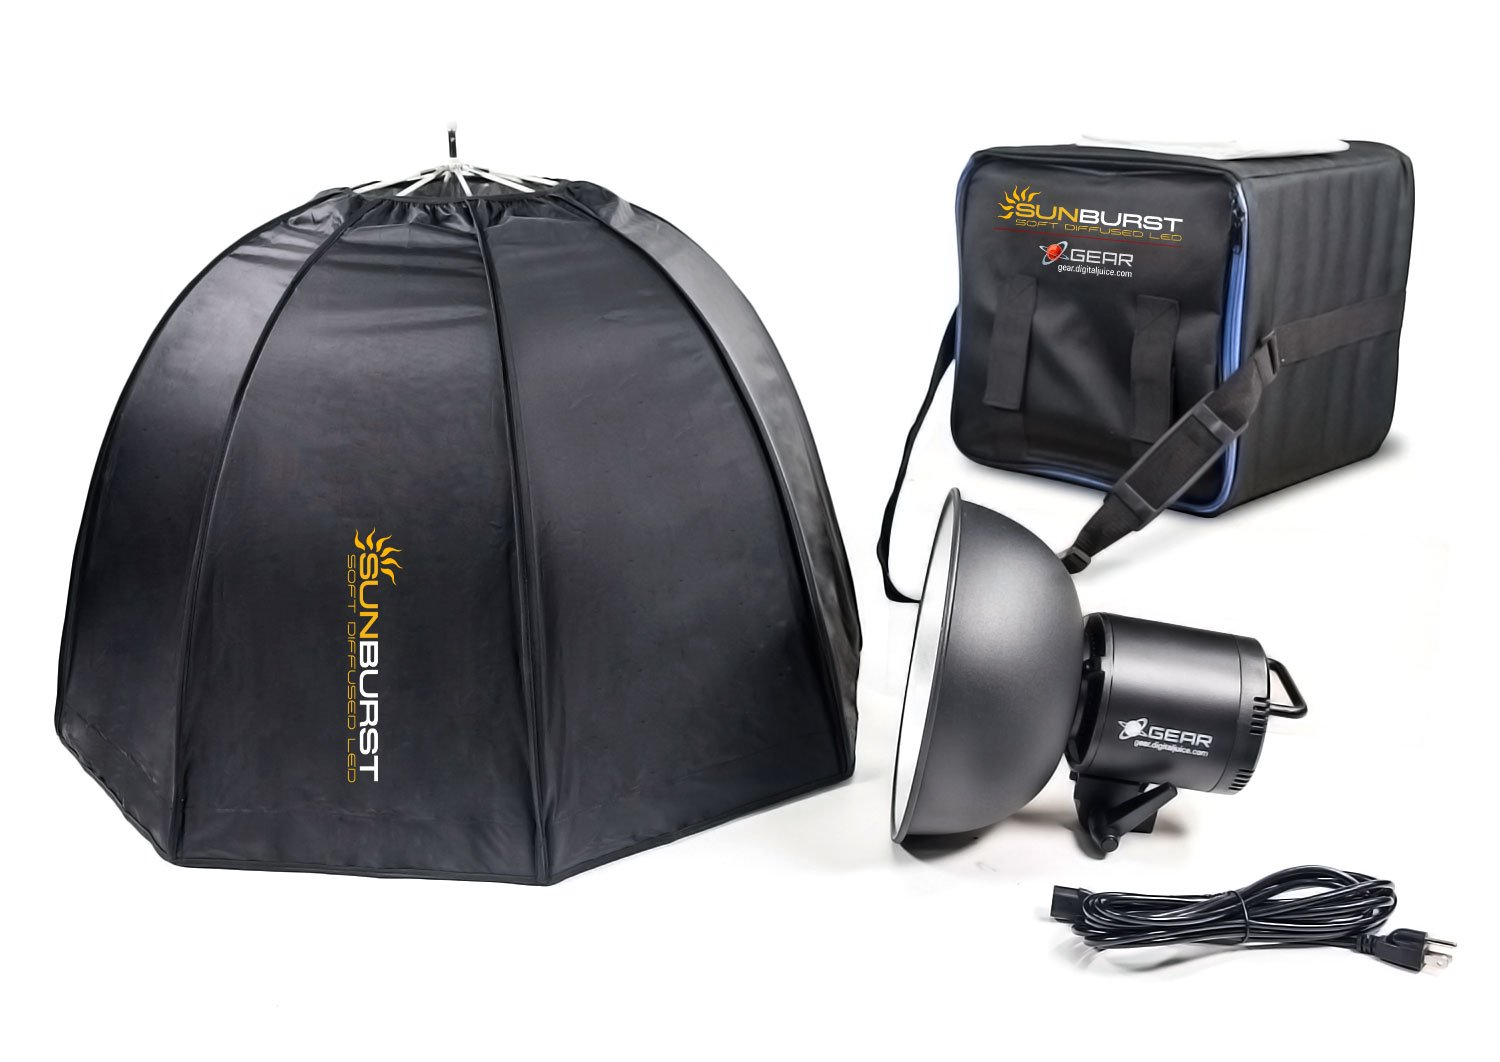 Digital Juice SunBurst 288 LED Softbox Kit